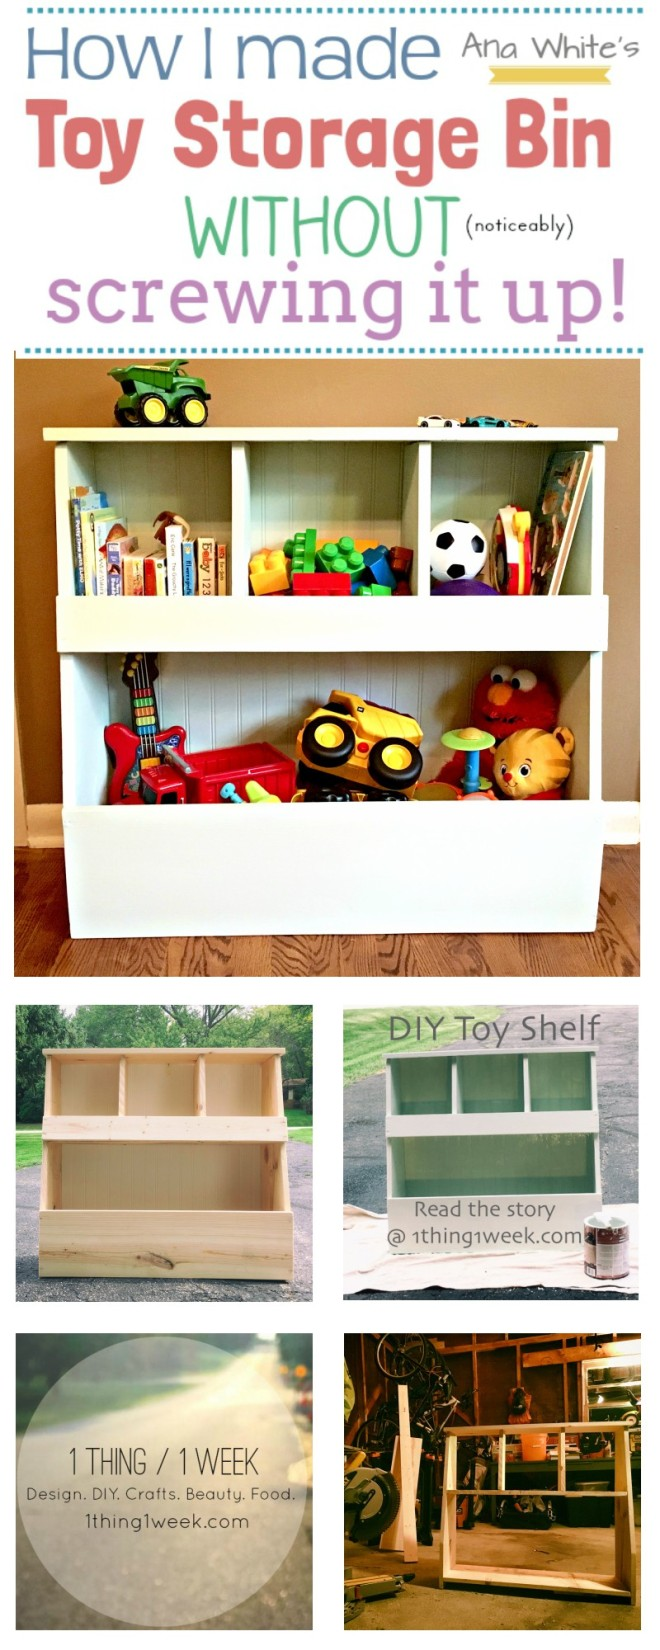 Diy Toy Storage Bin Week 1 1 Thing 1 Week